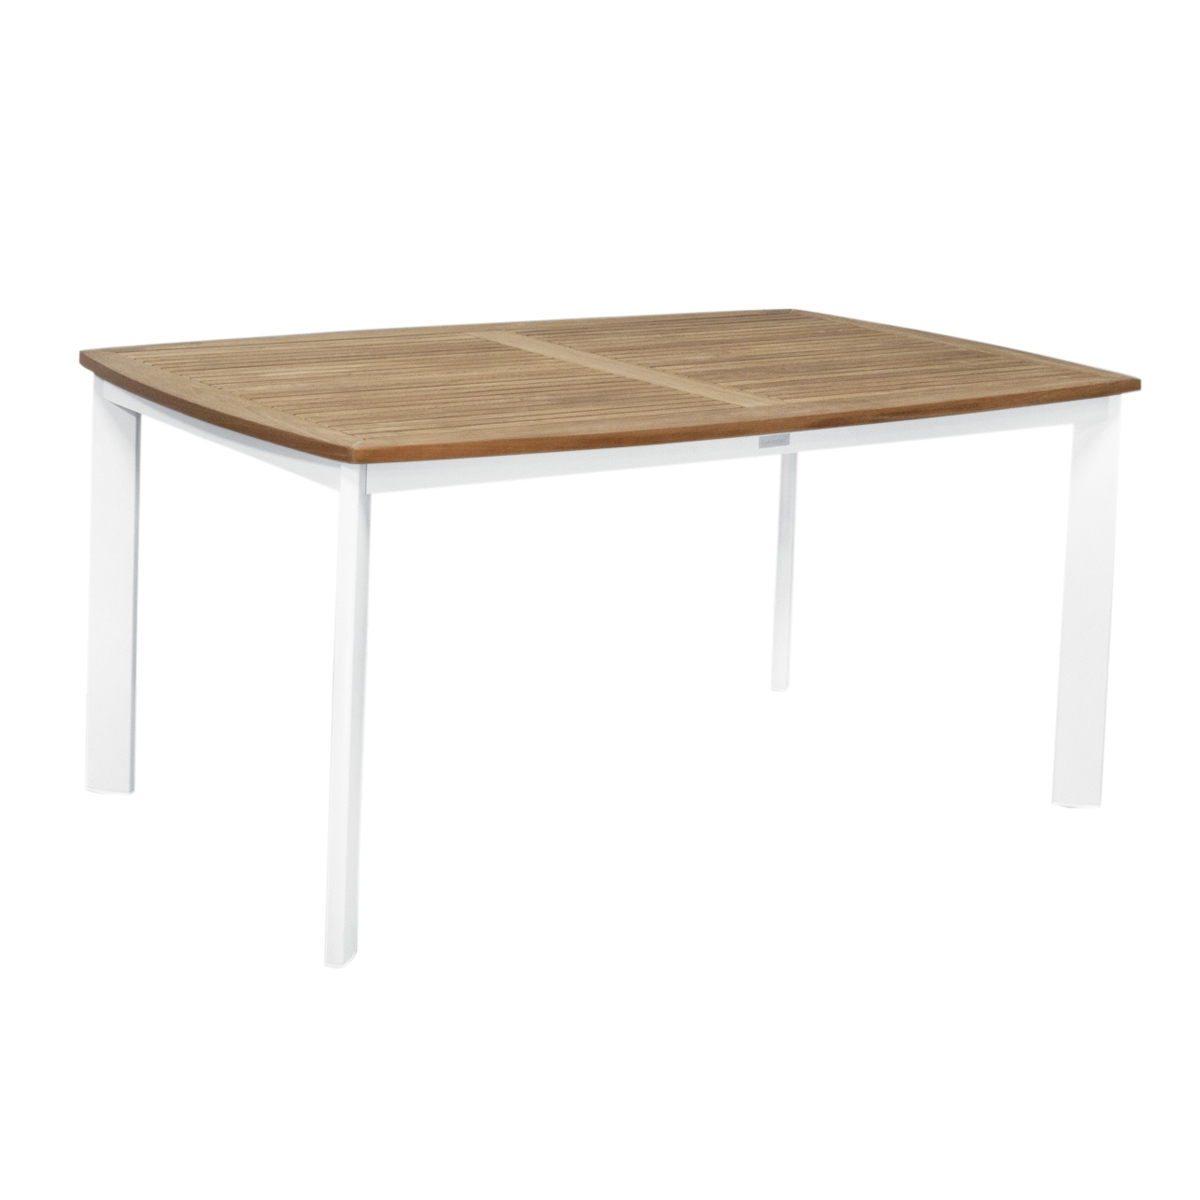 Table de jardin en aluminium teck neo tresi zendart design - Table de jardin en teck ...